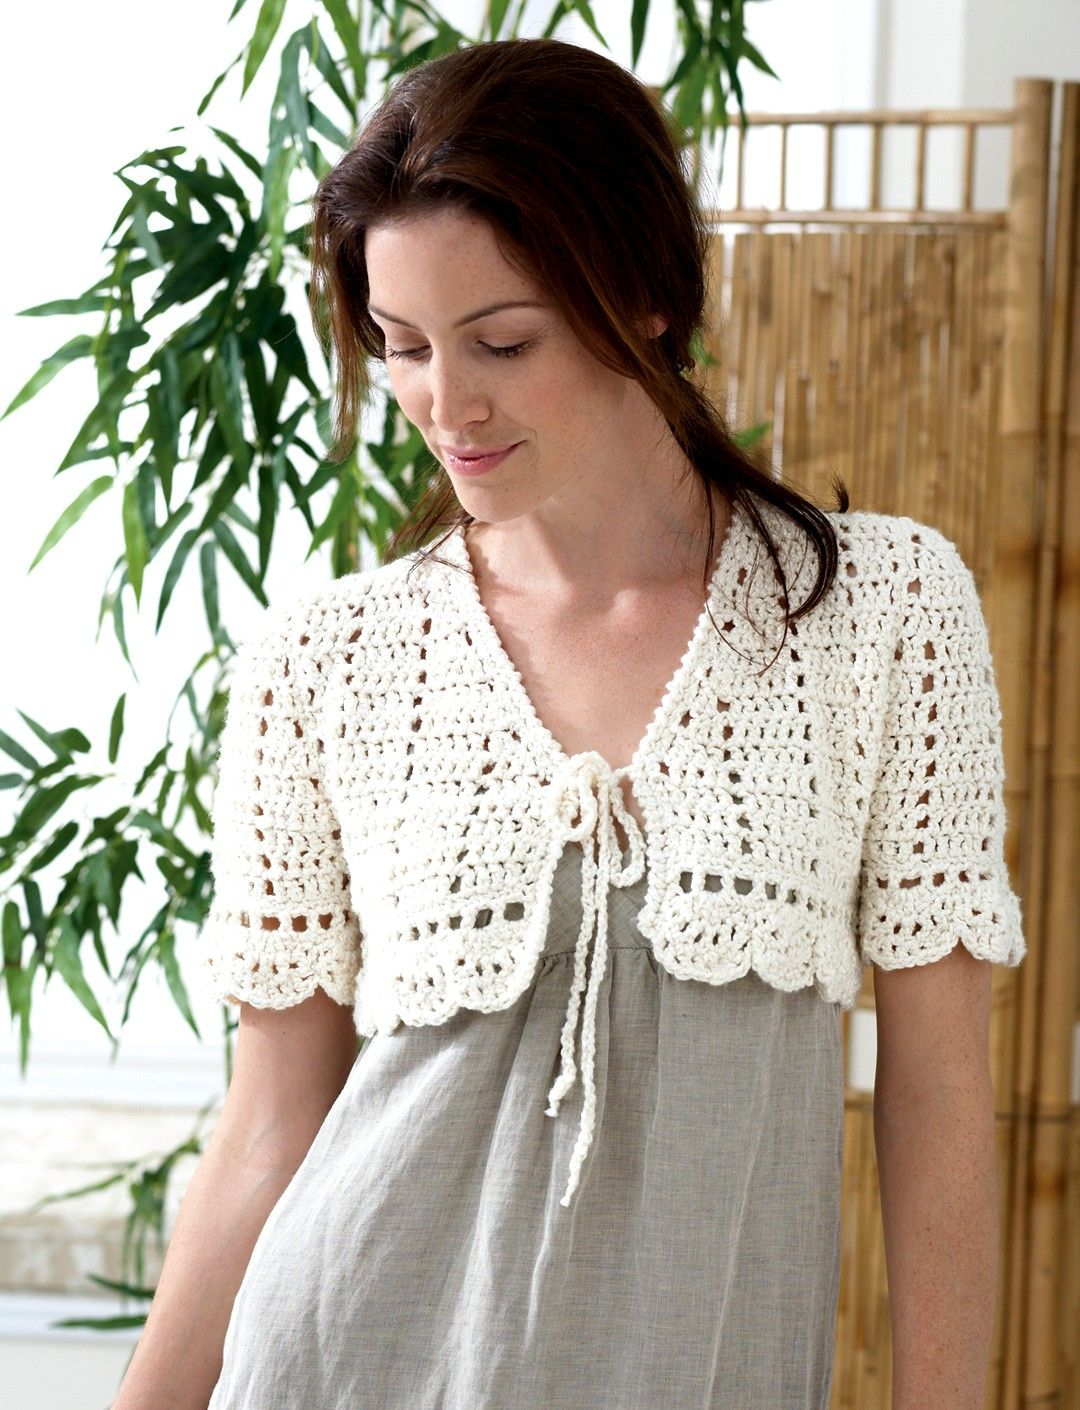 Yarnspirations.com - Bernat Crochet Bolero - Patterns ...